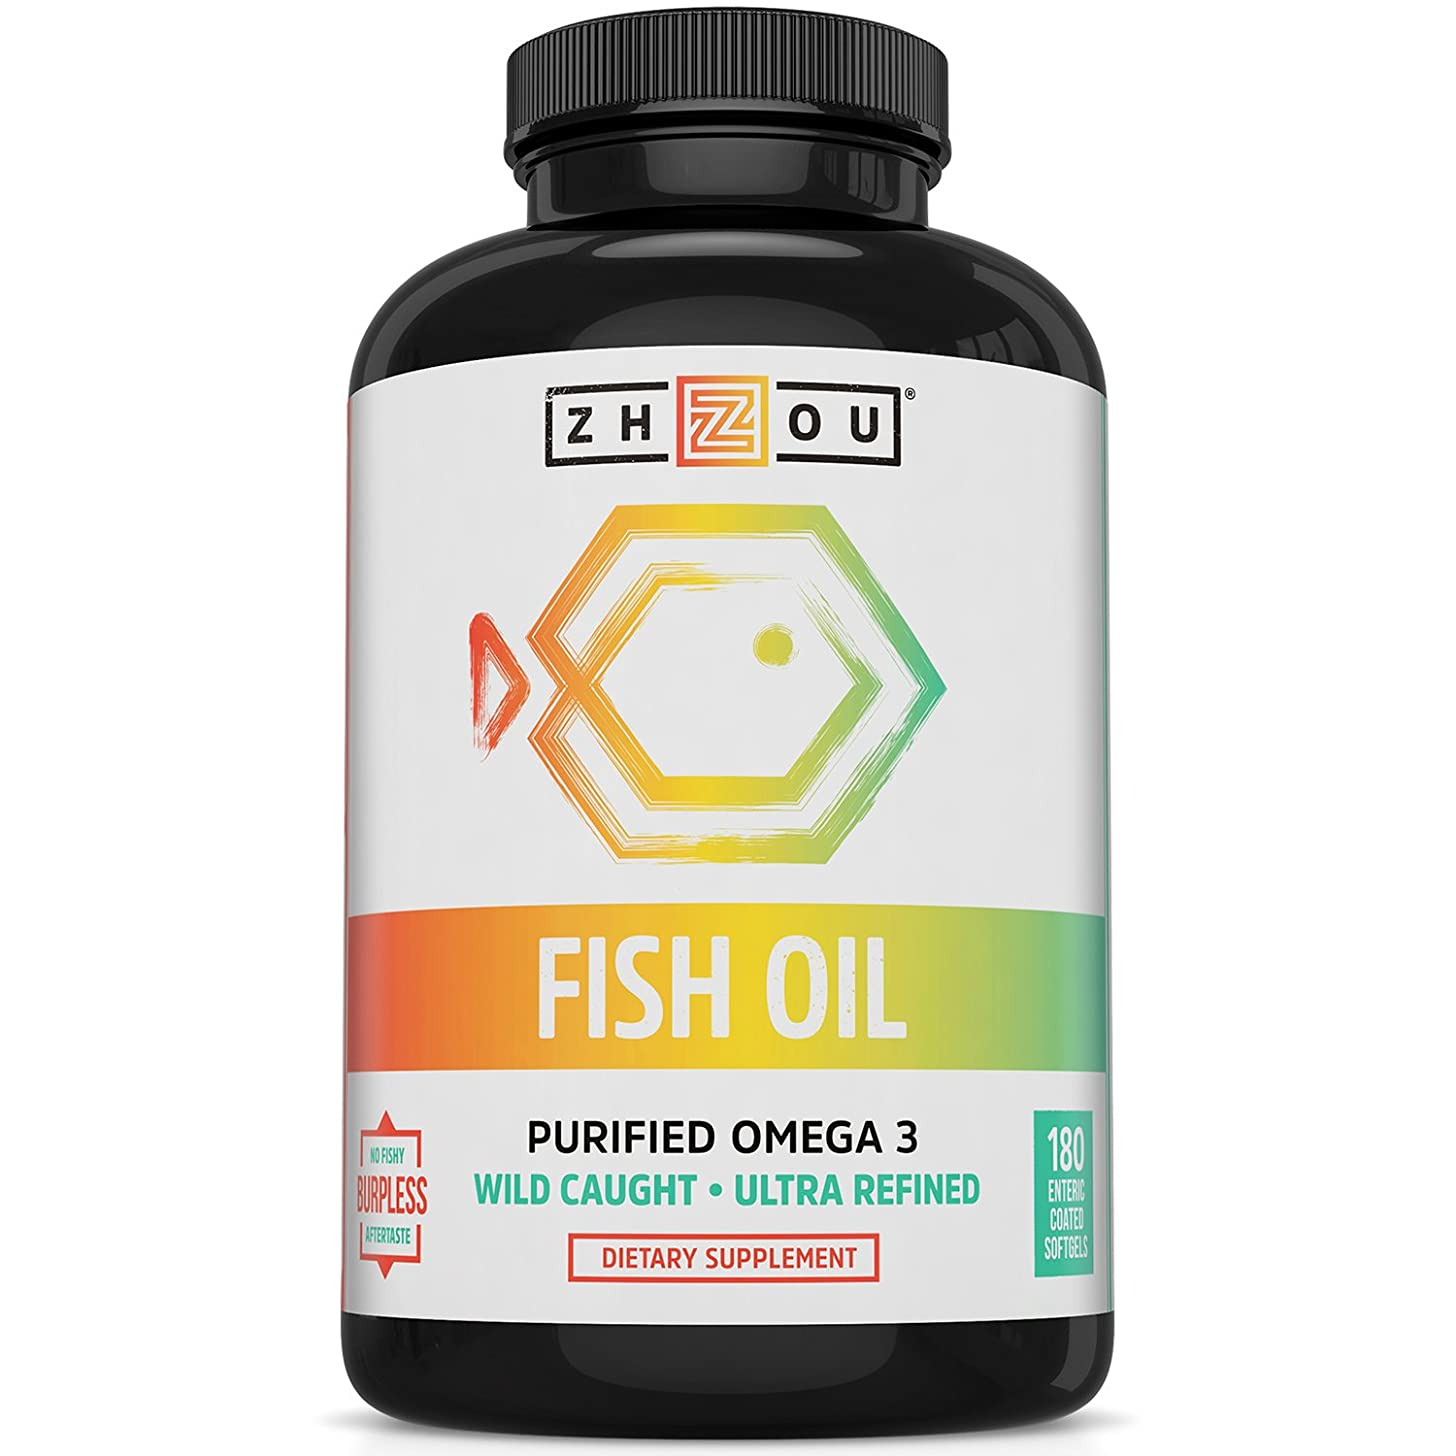 Fish Oil - Max Strength Omega 3 Fatty Acids with EPA and DHA from Purified, Sustainably-Sourced Fish Oil- Heart, Joint and Brain Health Formula - High Potency, Burpless Fish Oil Softgels